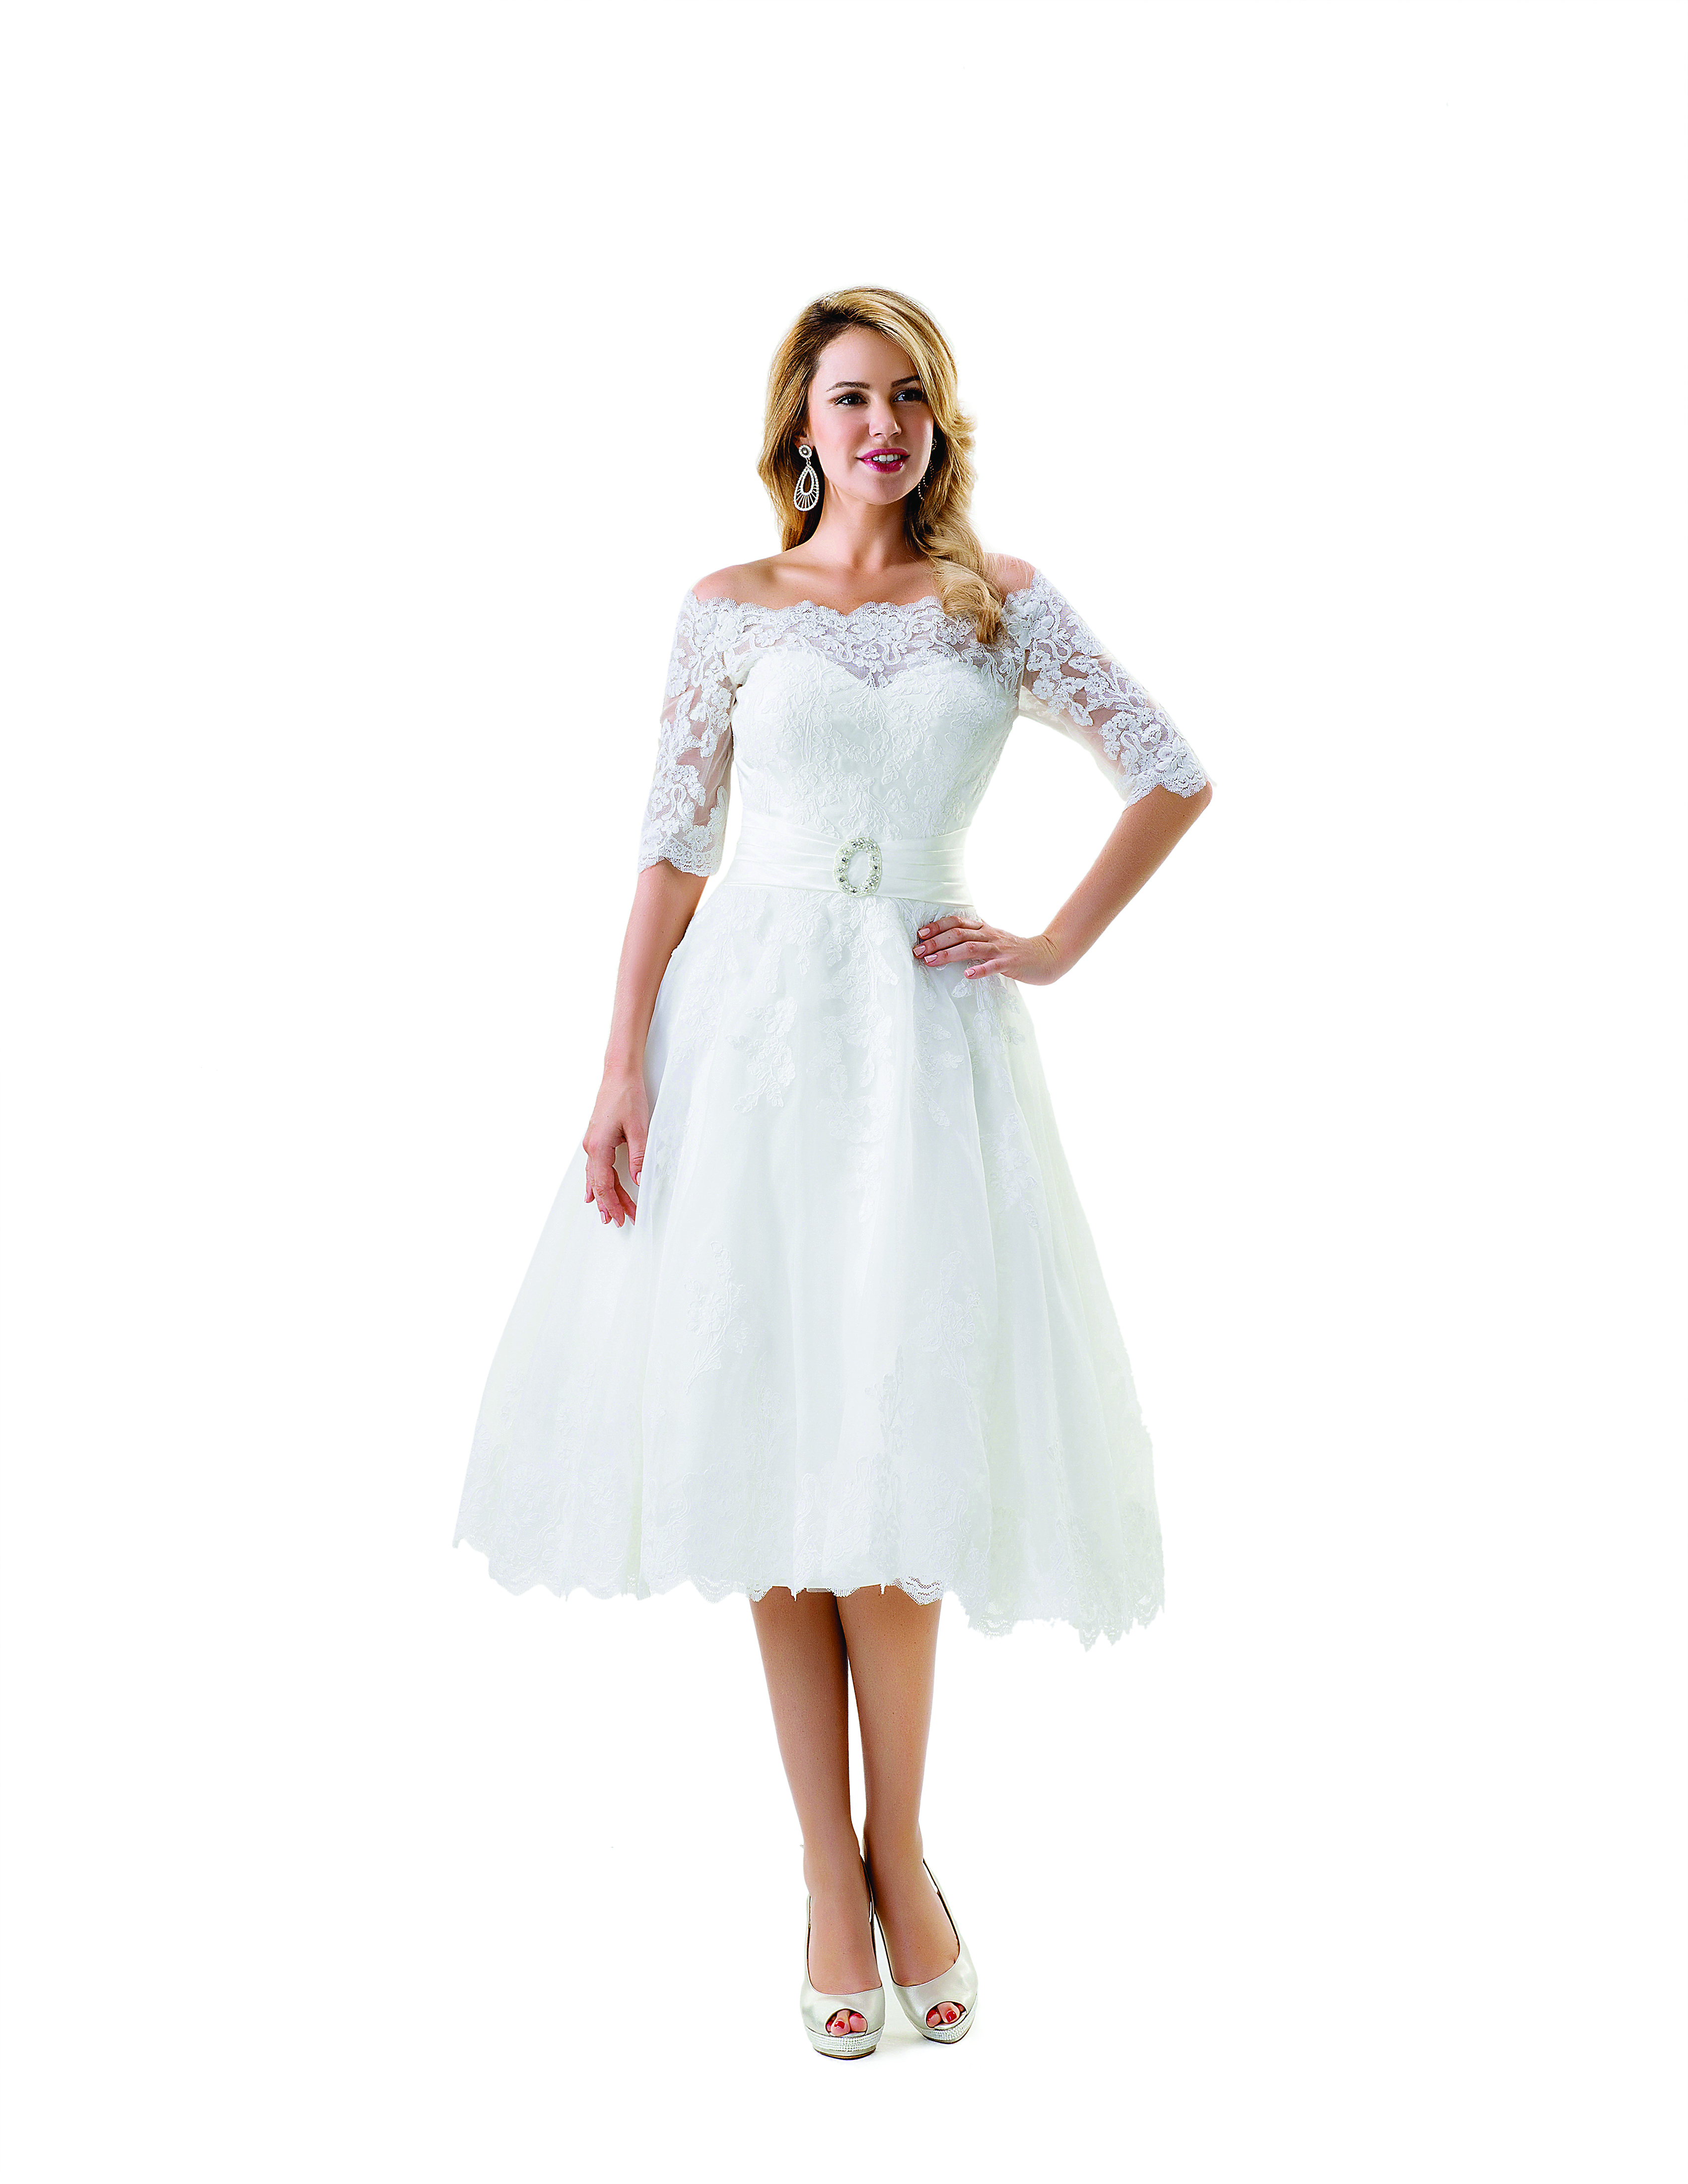 Braut Mode Brautkleid Sizilien Pictures to pin on Pinterest